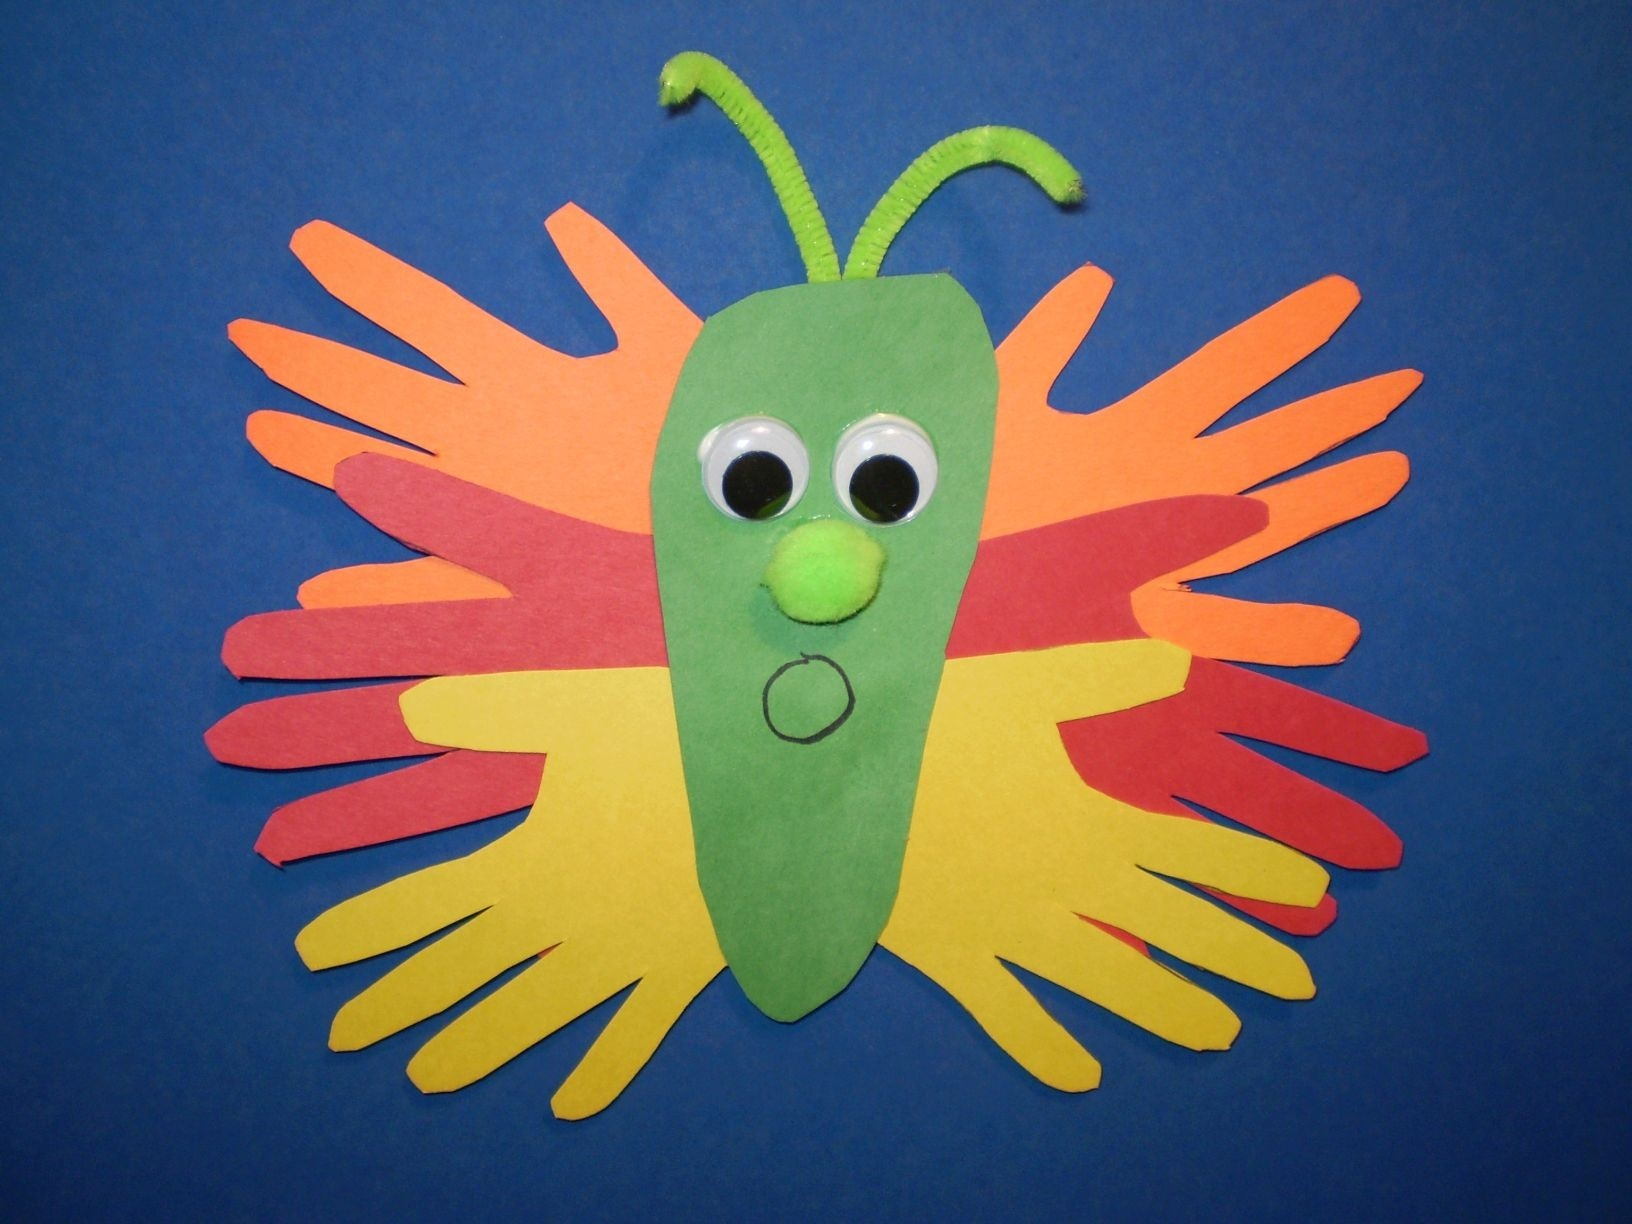 Construction Paper Art Projects | Materials: Colored Construction intended for Construction Paper Art For Kids 29000